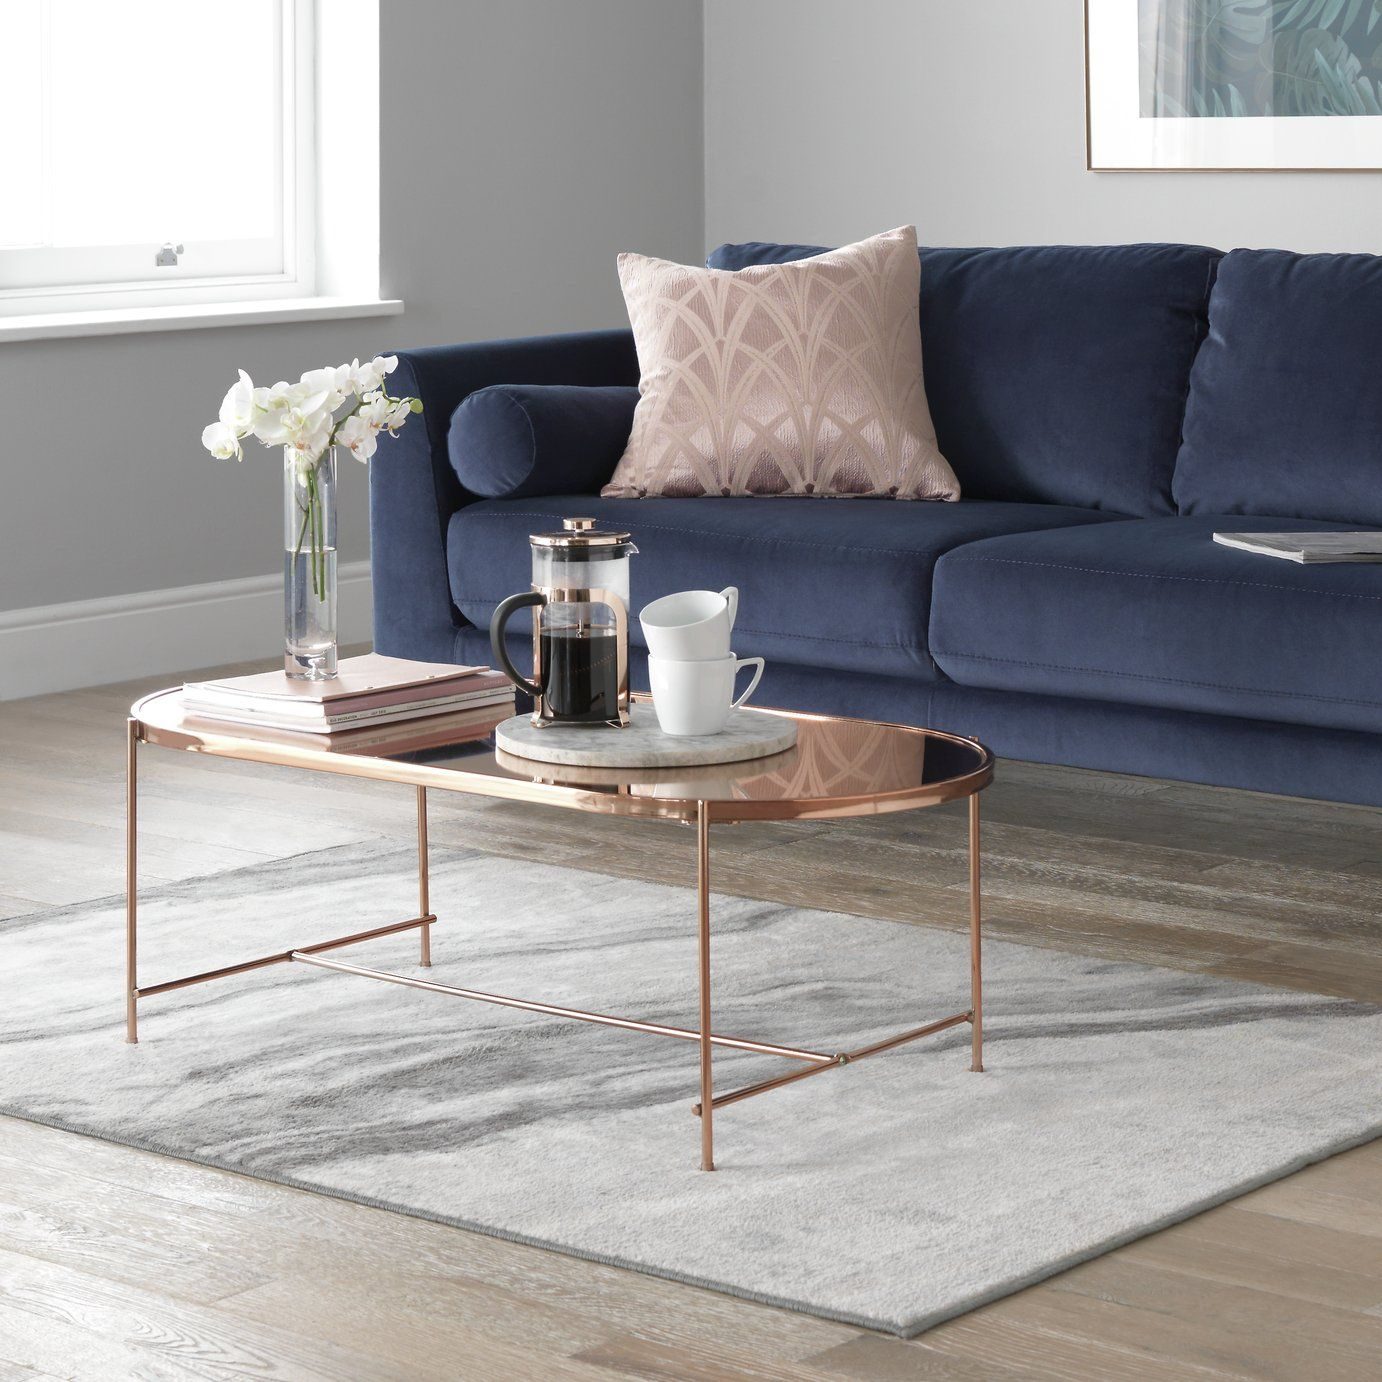 Buy Argos Home Boutique Coffee Table Rose Gold Coffee Tables Argos In 2021 Rose Gold Coffee Table Coffee Table Coffee Table Argos [ 1382 x 1382 Pixel ]